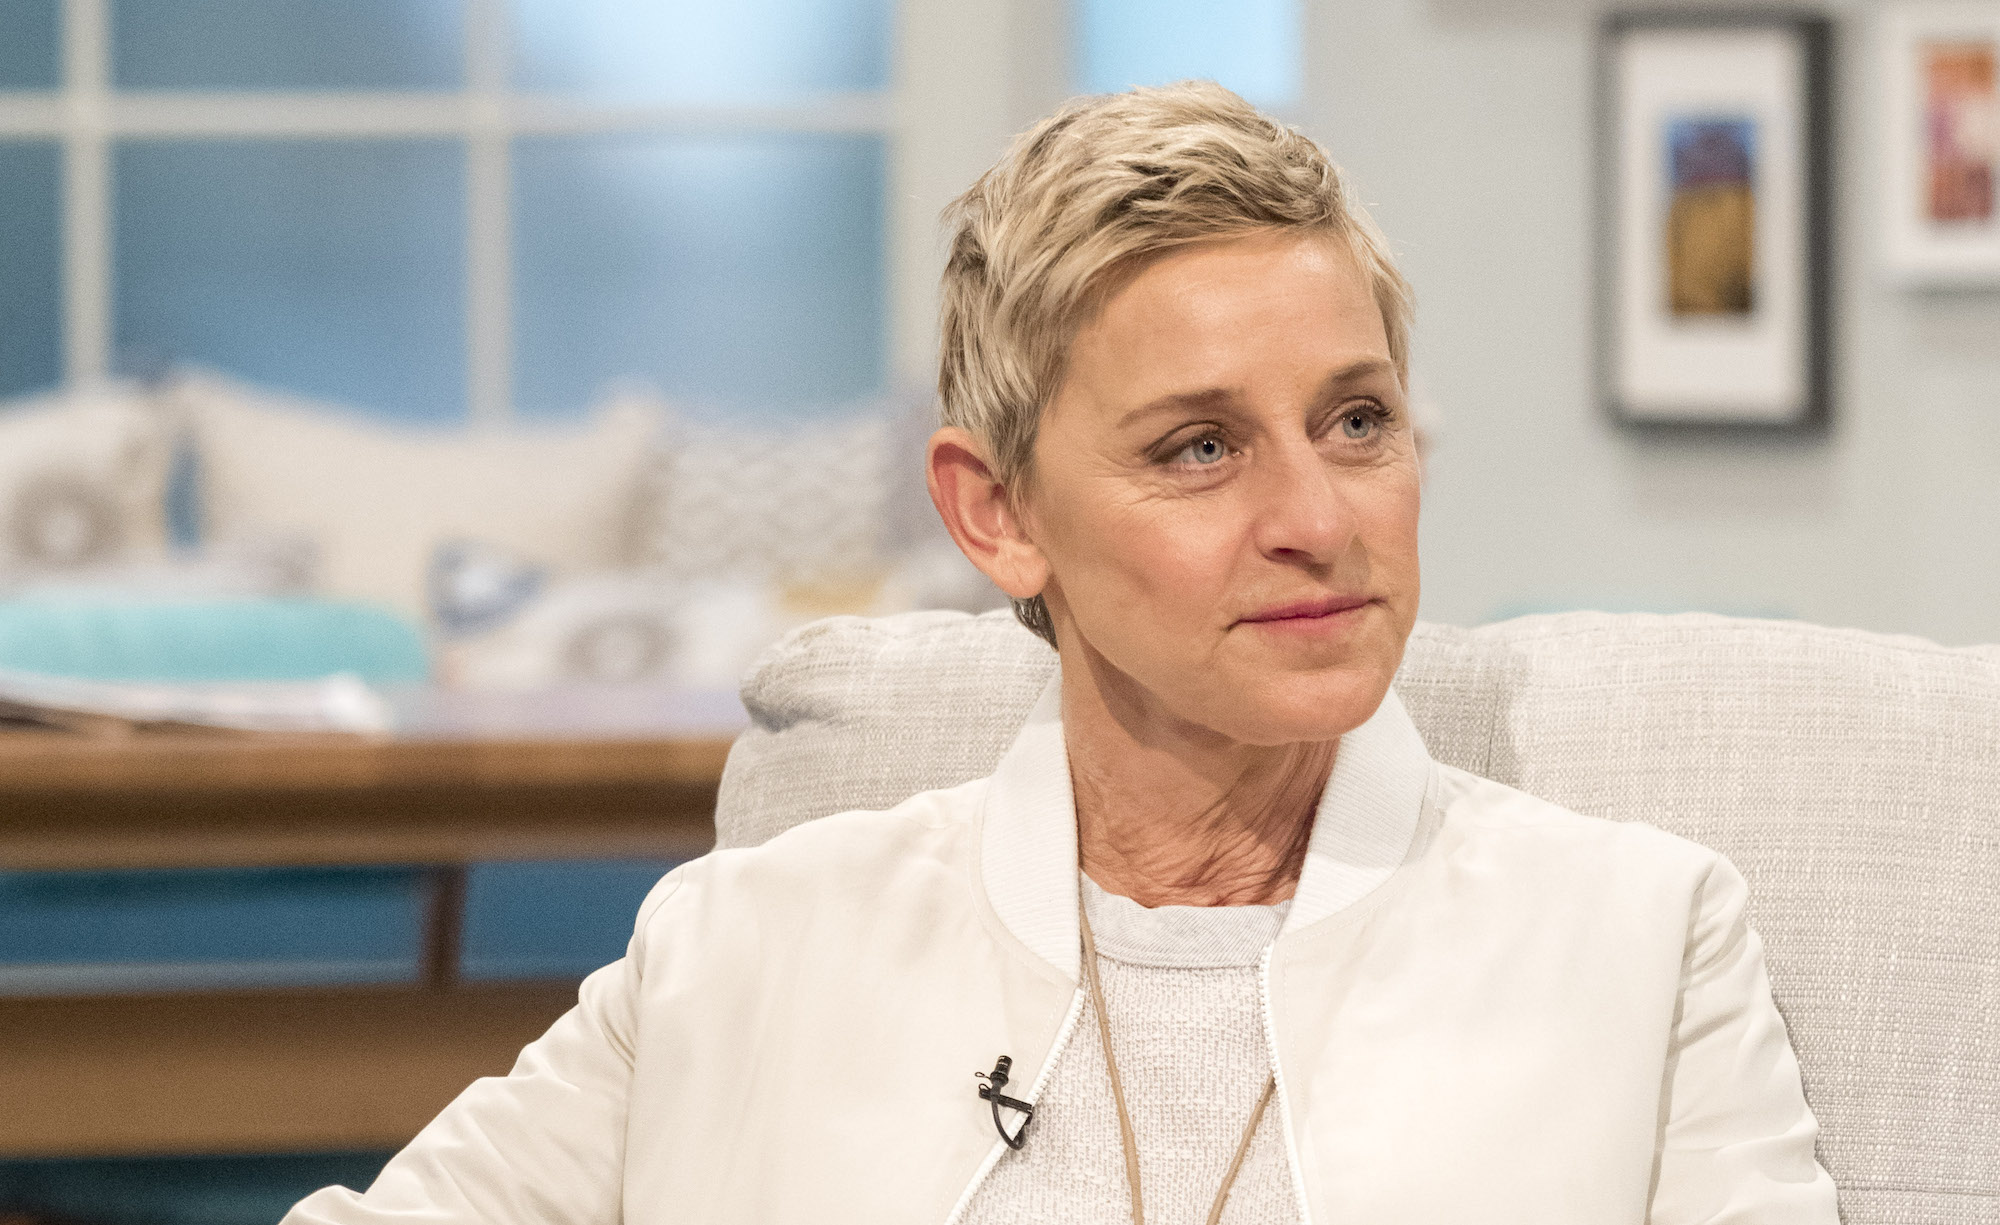 Ellen DeGeneres has revealed she was deeply depressed after coming out